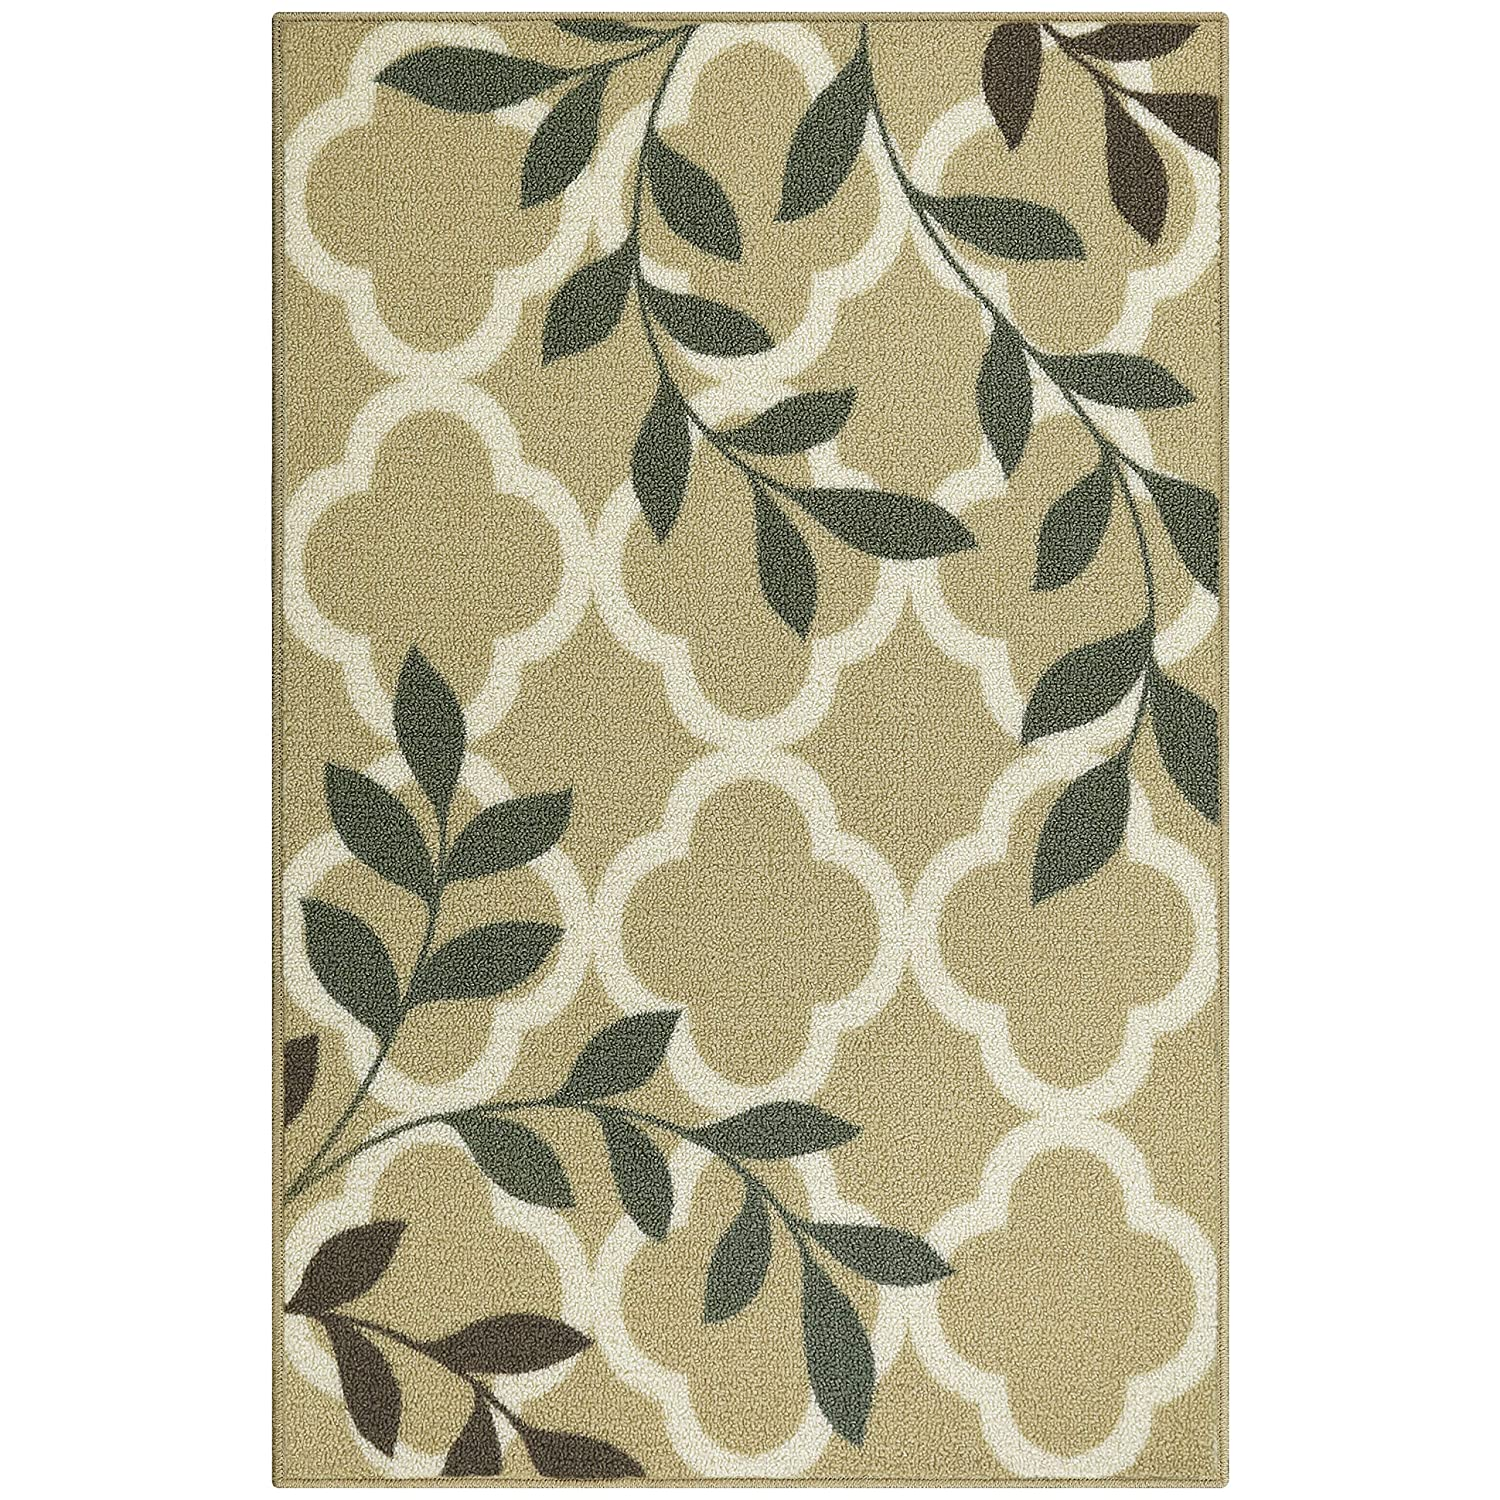 Maples Rugs Kitchen Vera 18 x 210 Non Skid Small Accent Throw Rugs Made in USA for Entryway and Bedroom Neutral